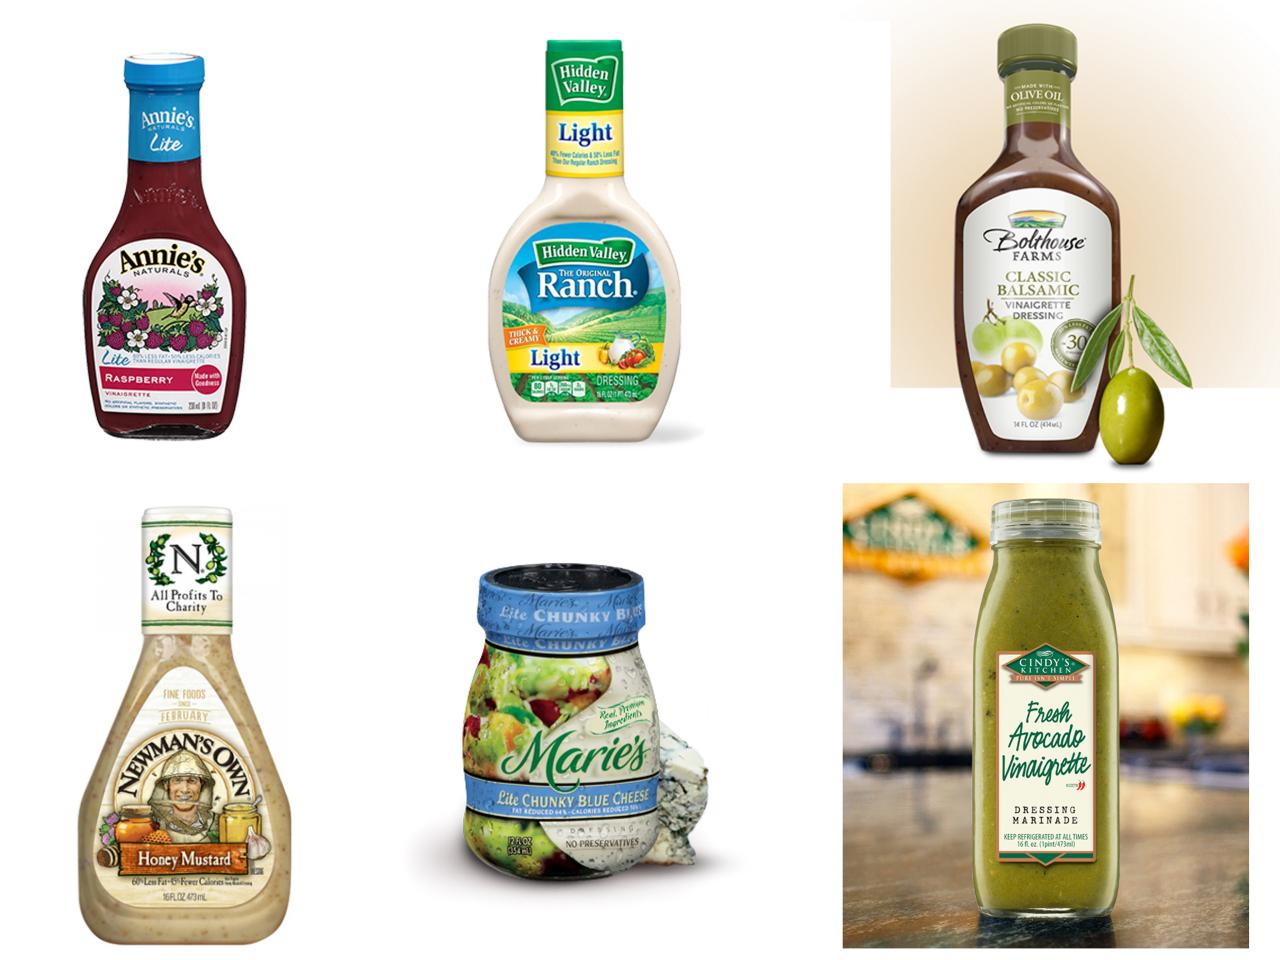 Furthering the Company's mission to Inspire the Fresh Revolution, Bolthouse Farms is also adding more culinary variety to their existing refrigerated dressing line-up with three new organic and.